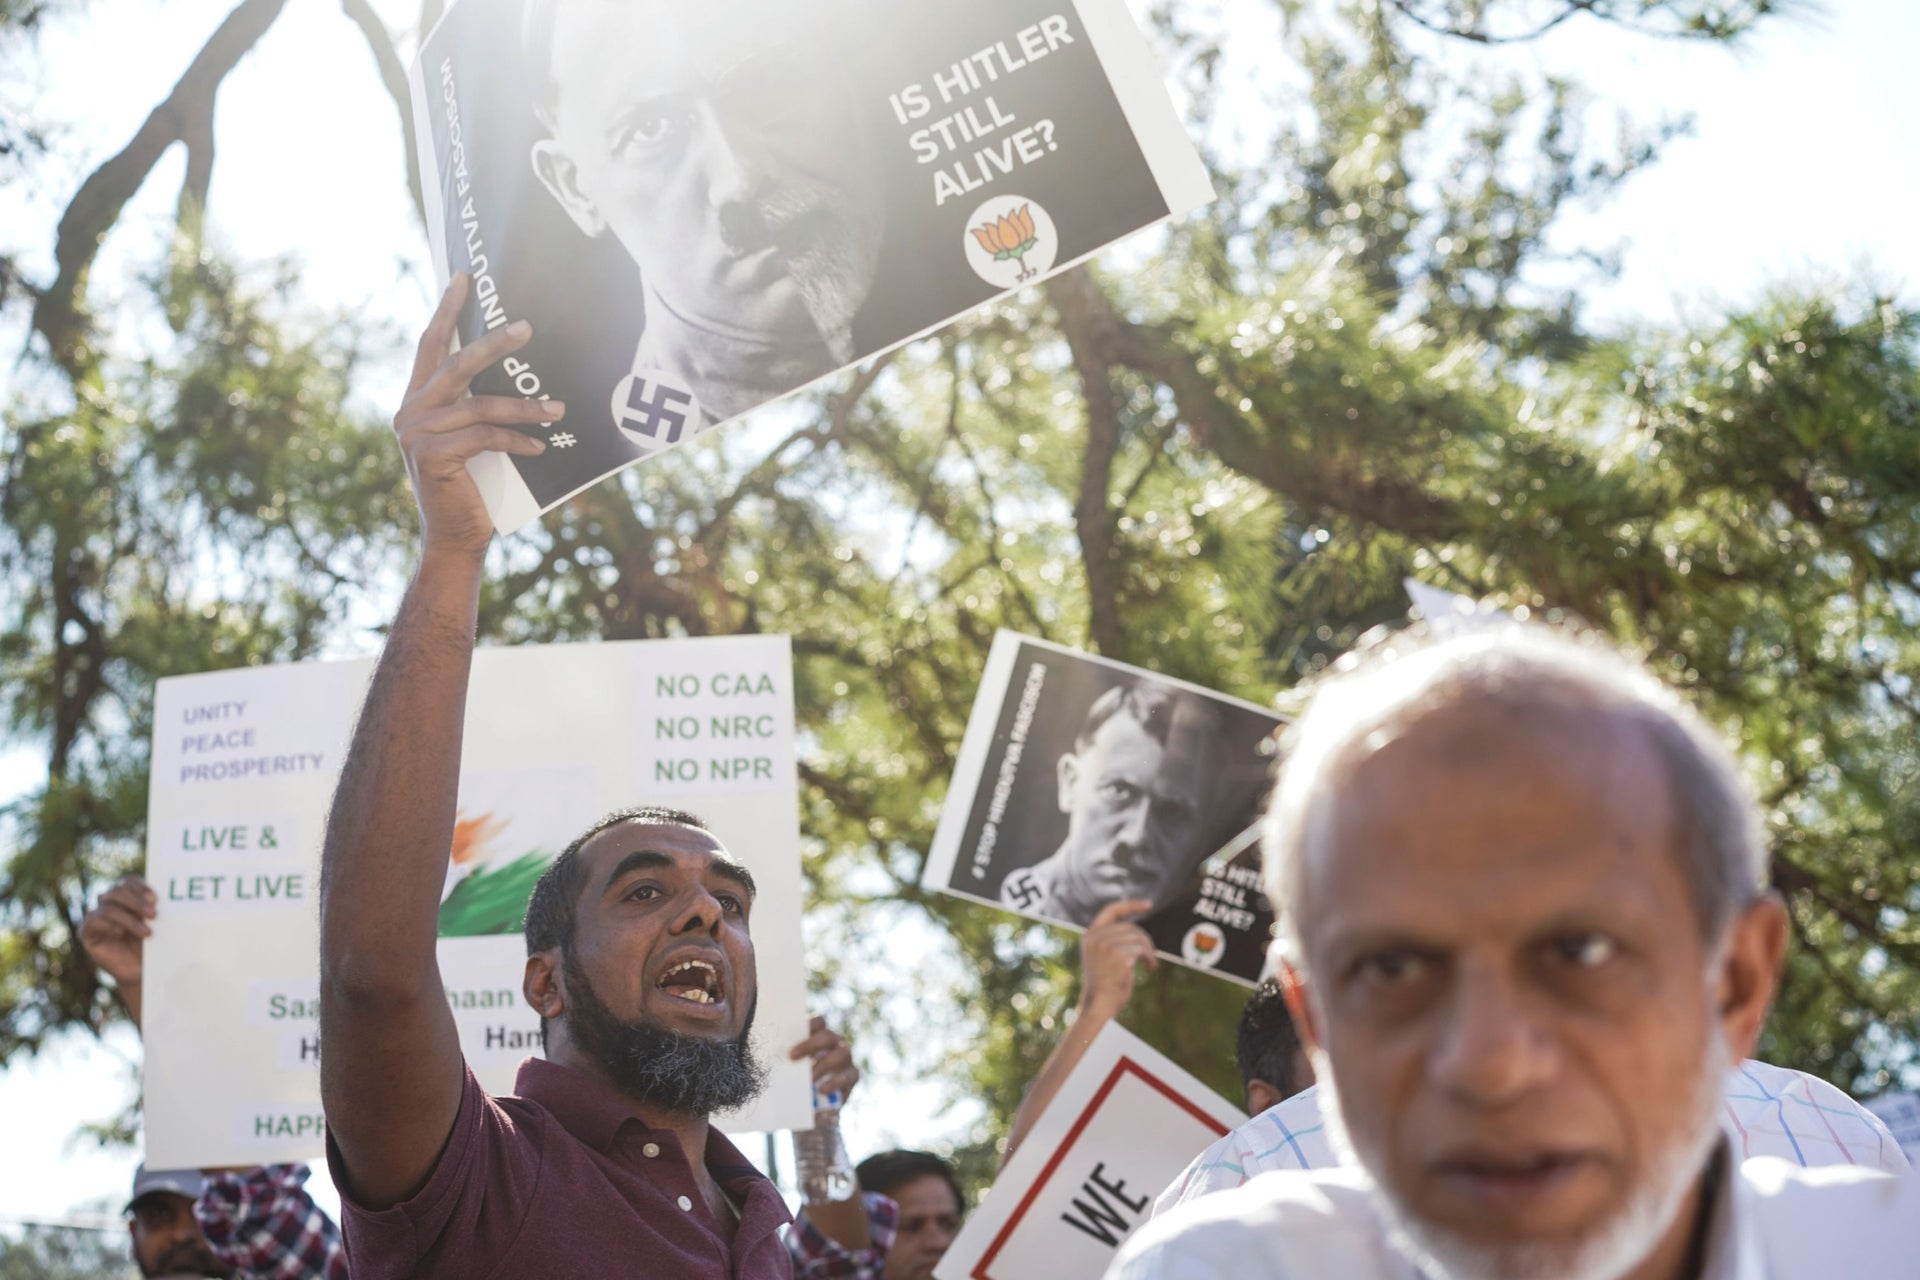 Protesters rally against India's new citizenship law during a demonstration in Houston, Texas, U.S. January 26, 2020.